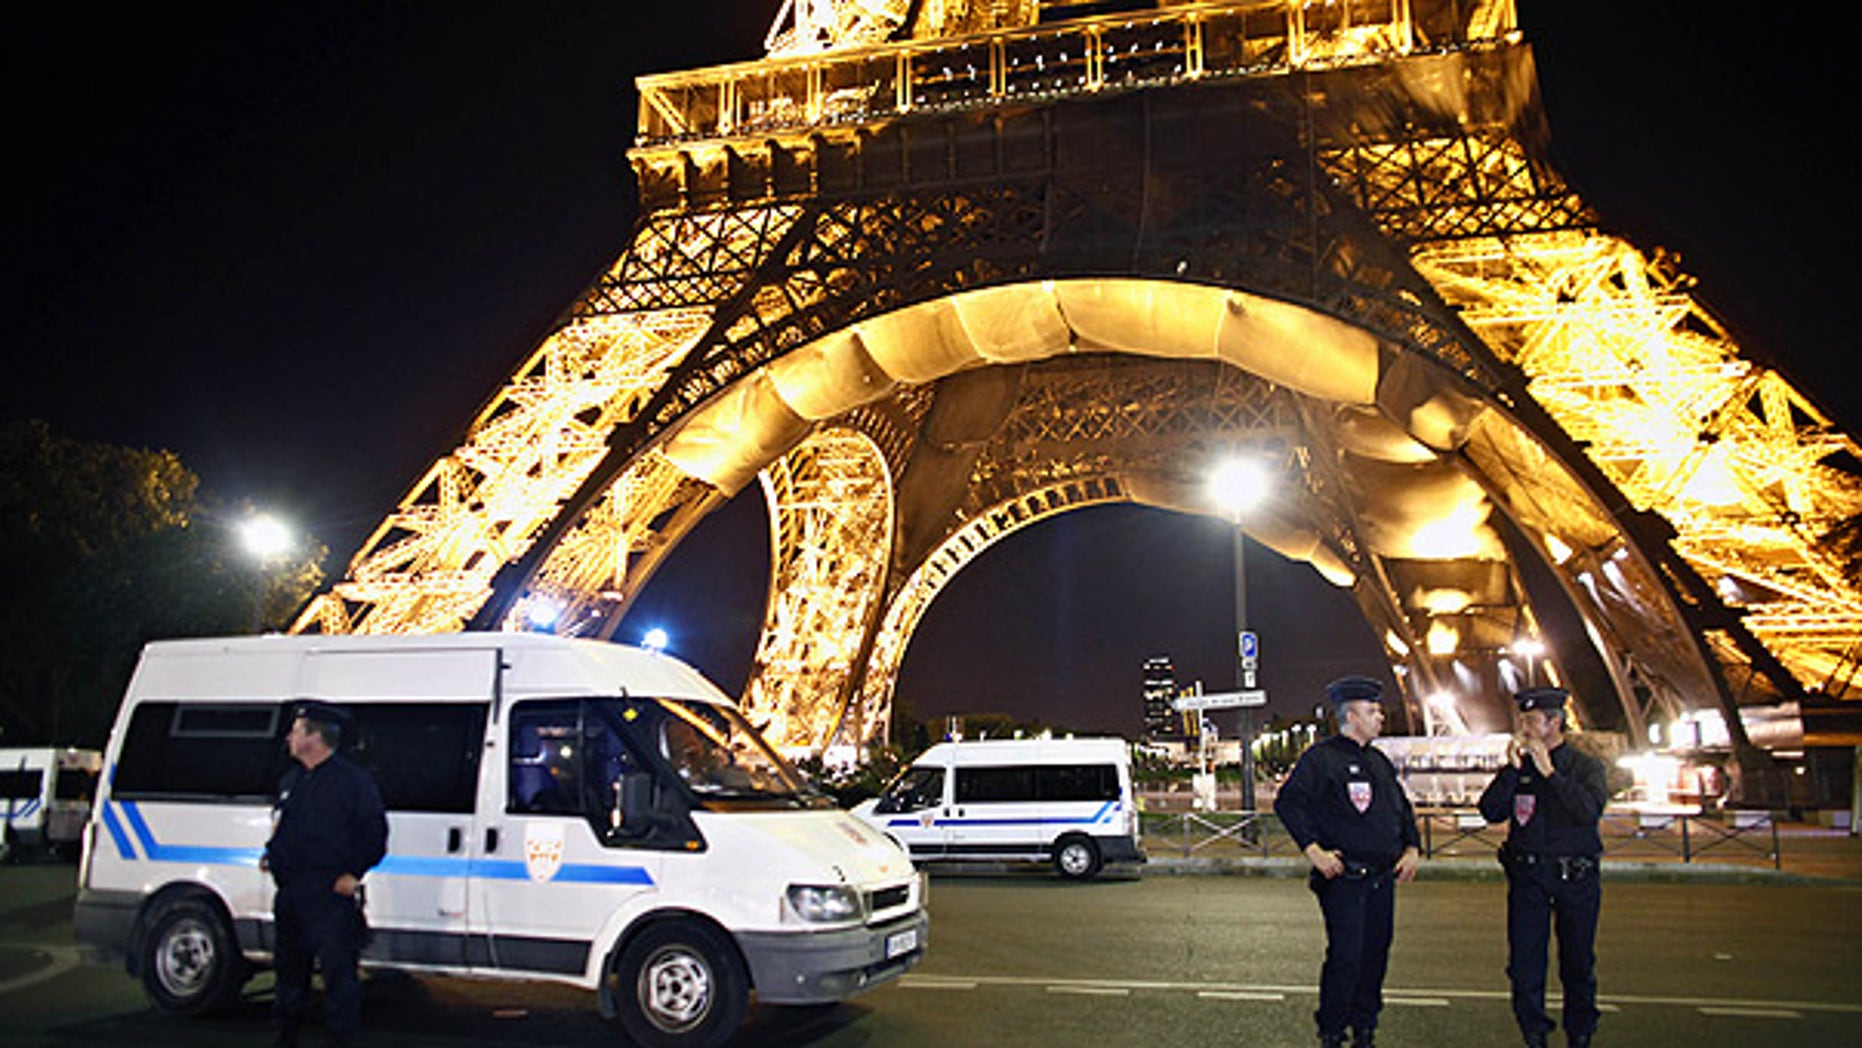 Police officers stand in front of the Eiffel Tower, in Paris, after an anonymous caller phoned in a bomb threat.